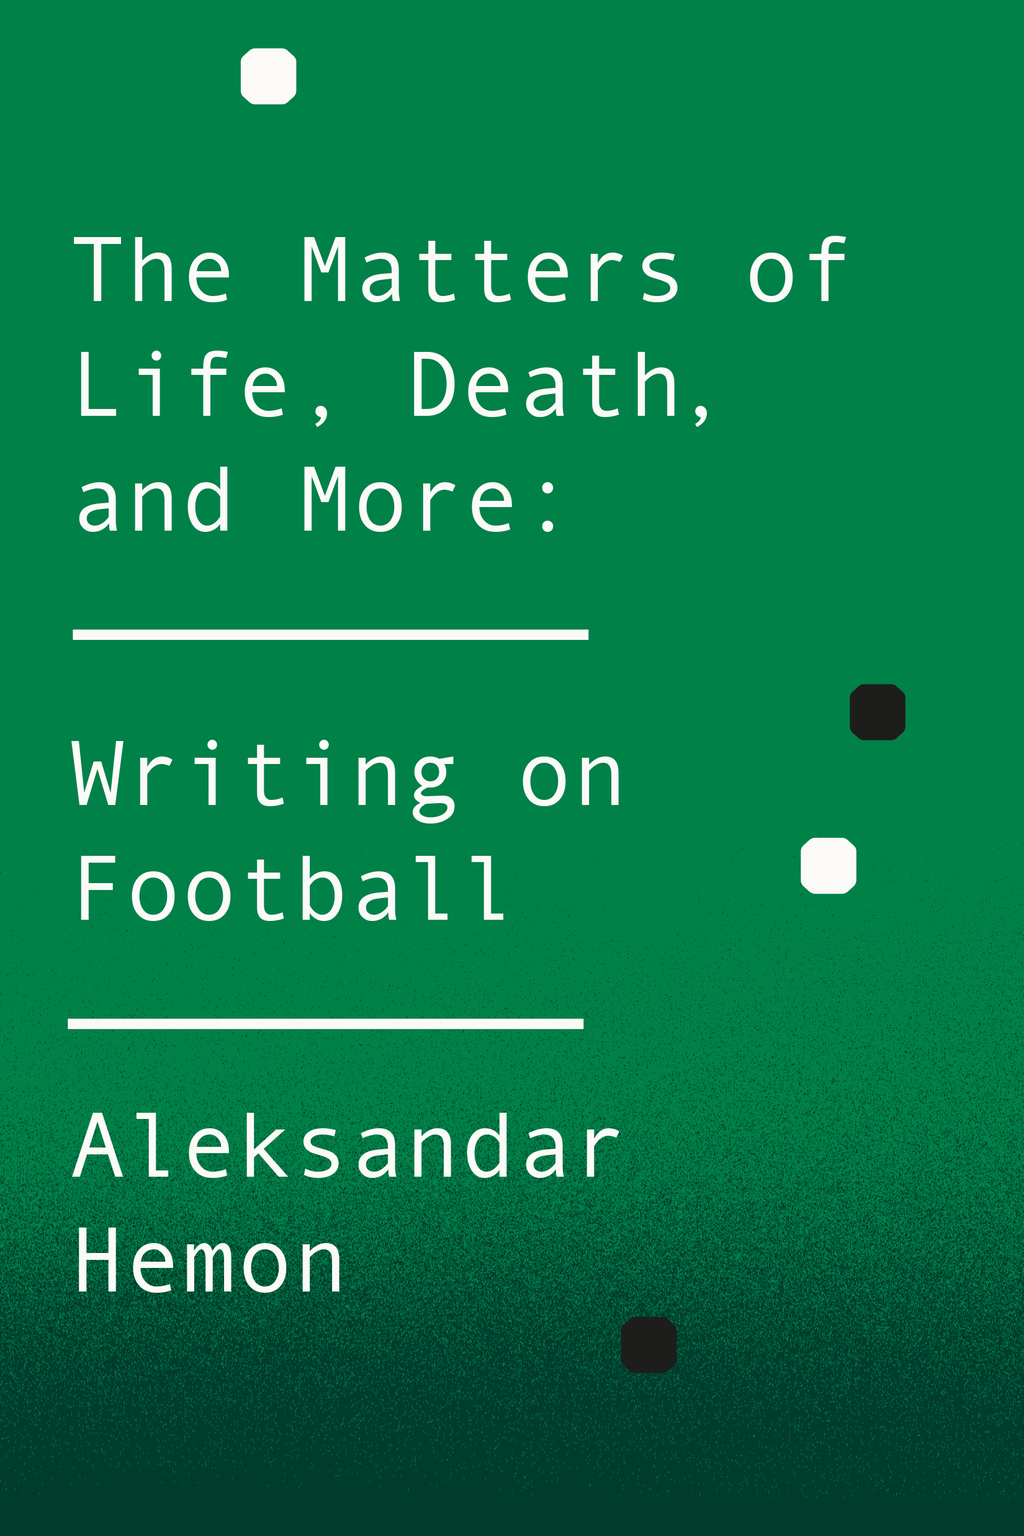 The Matters of Life, Death and More Writing on Football